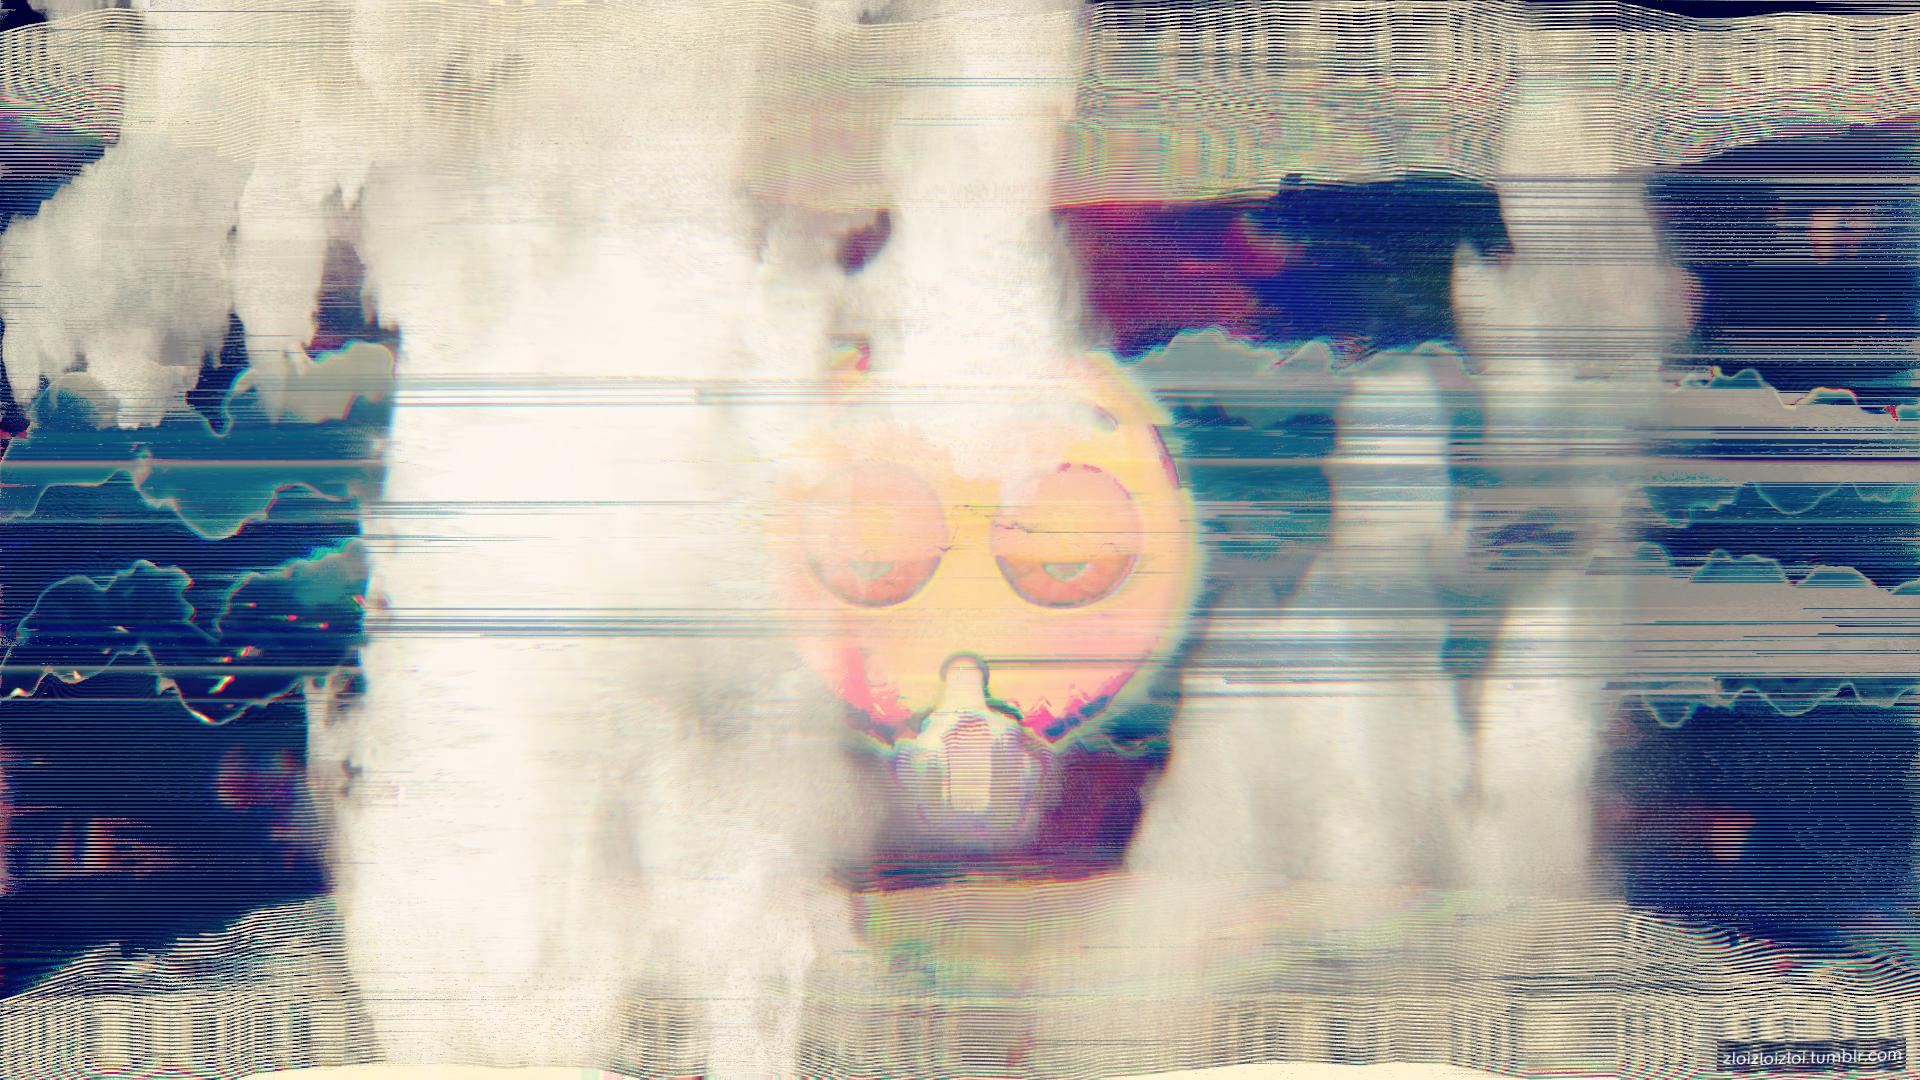 Glitch Artistic wallpapers HD quality